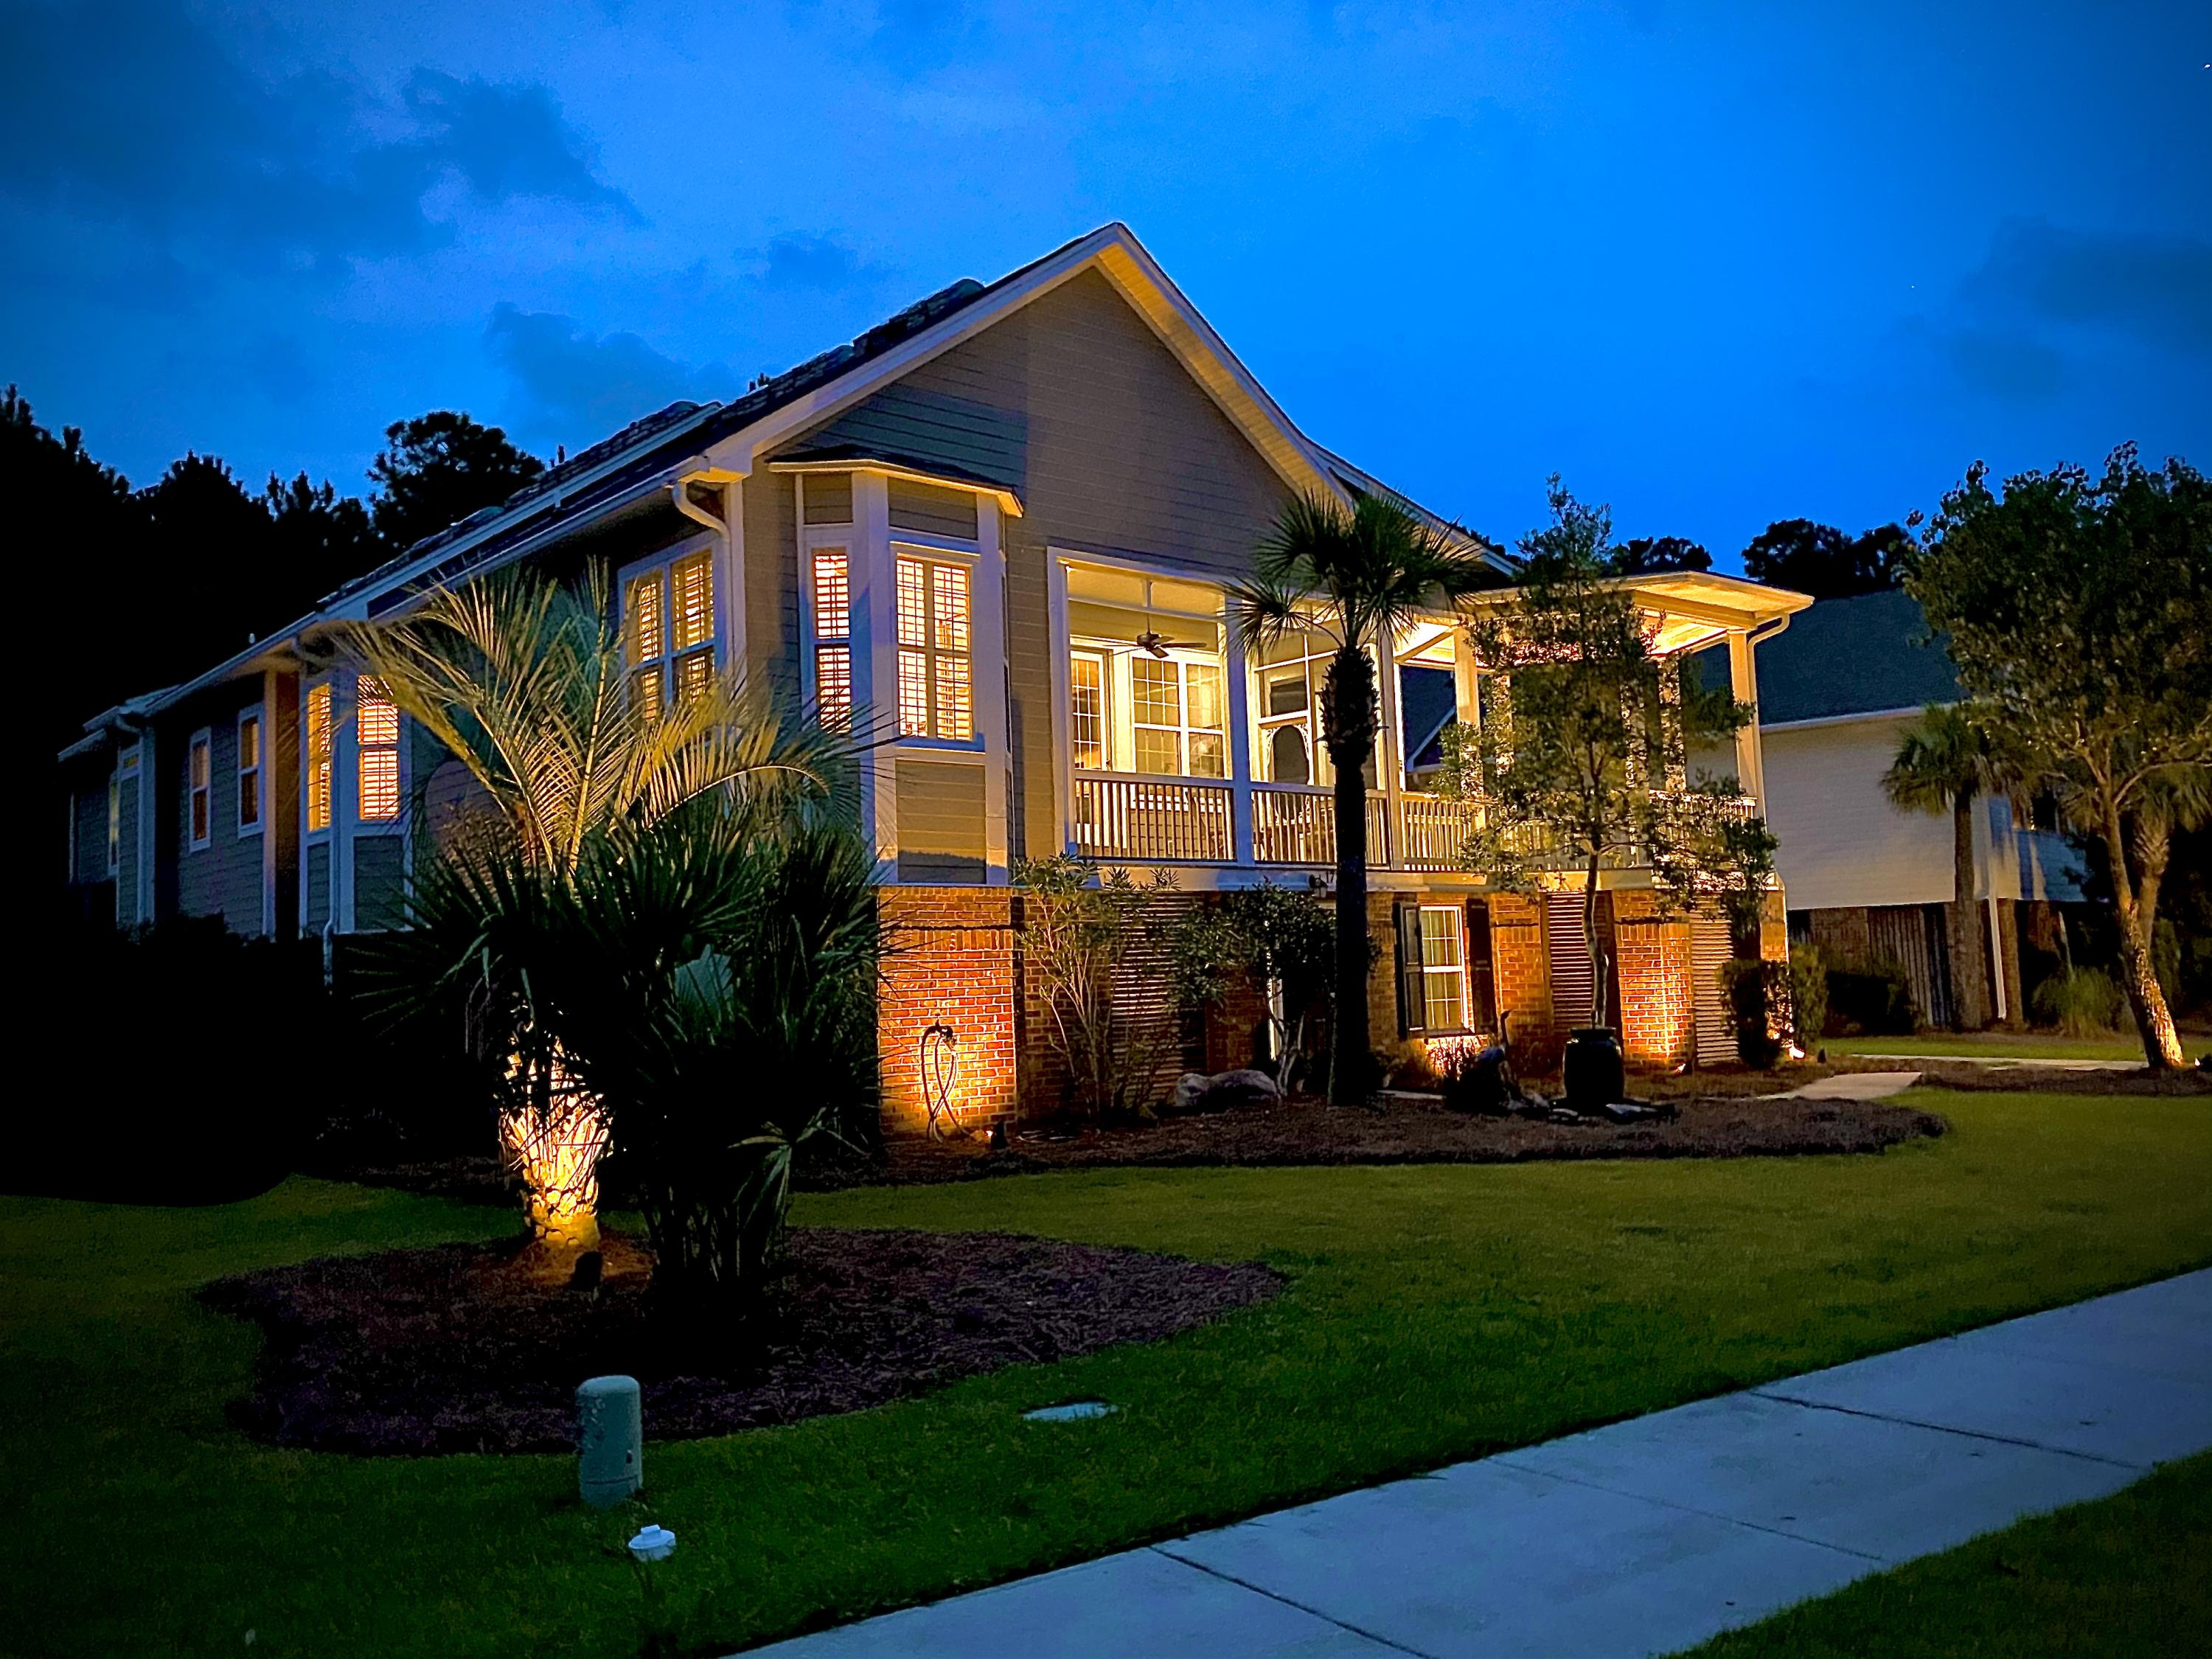 Rivertowne Country Club Homes For Sale - 1721 Rivertowne Country Club, Mount Pleasant, SC - 15